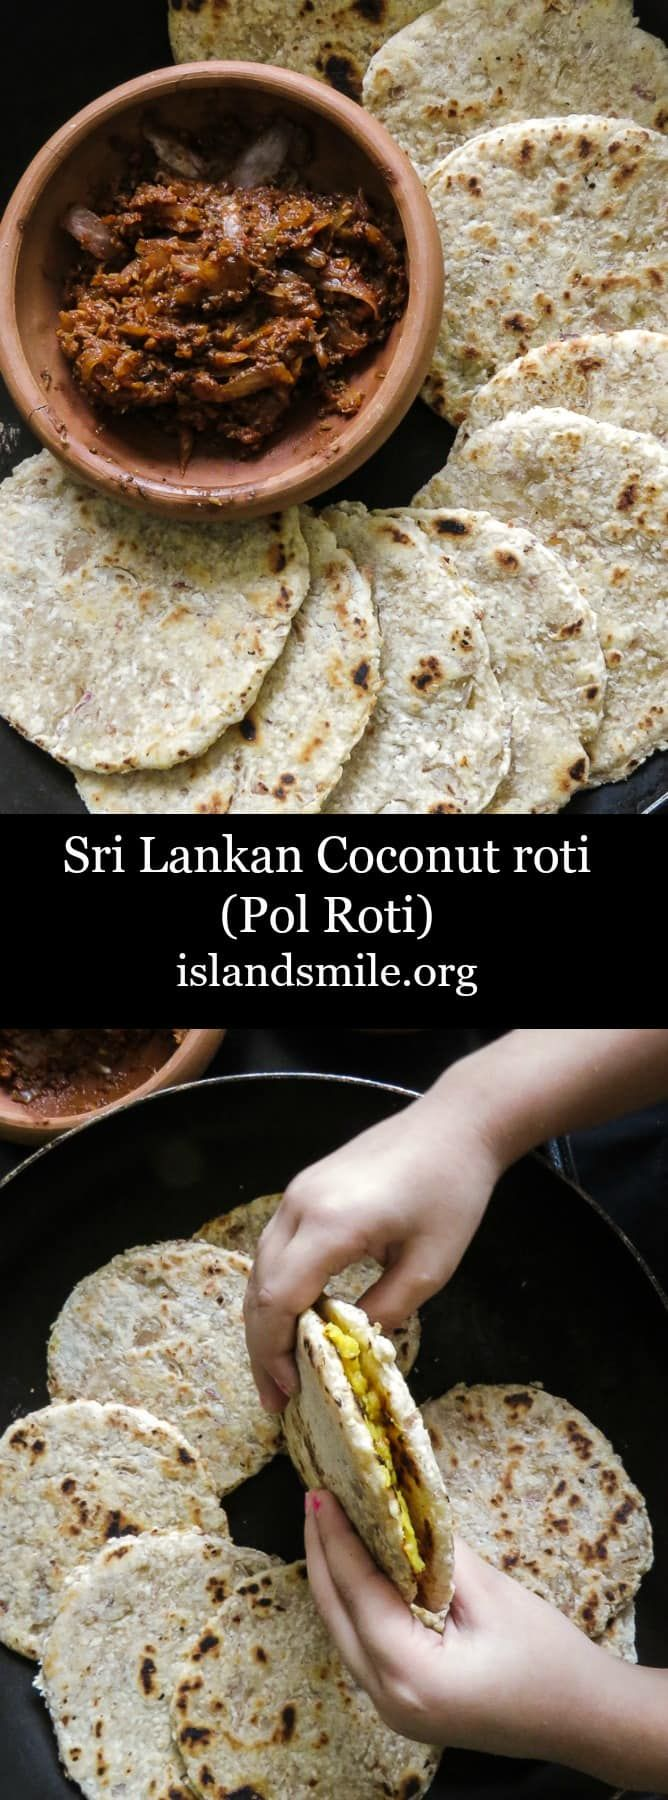 Sri lankan Coconut roti(pol roti, flat bread), a rustic flat bread made up of flour, grated coconut with diced green chillies and Onions for extra texture. vegan, vegetarian, breakfast